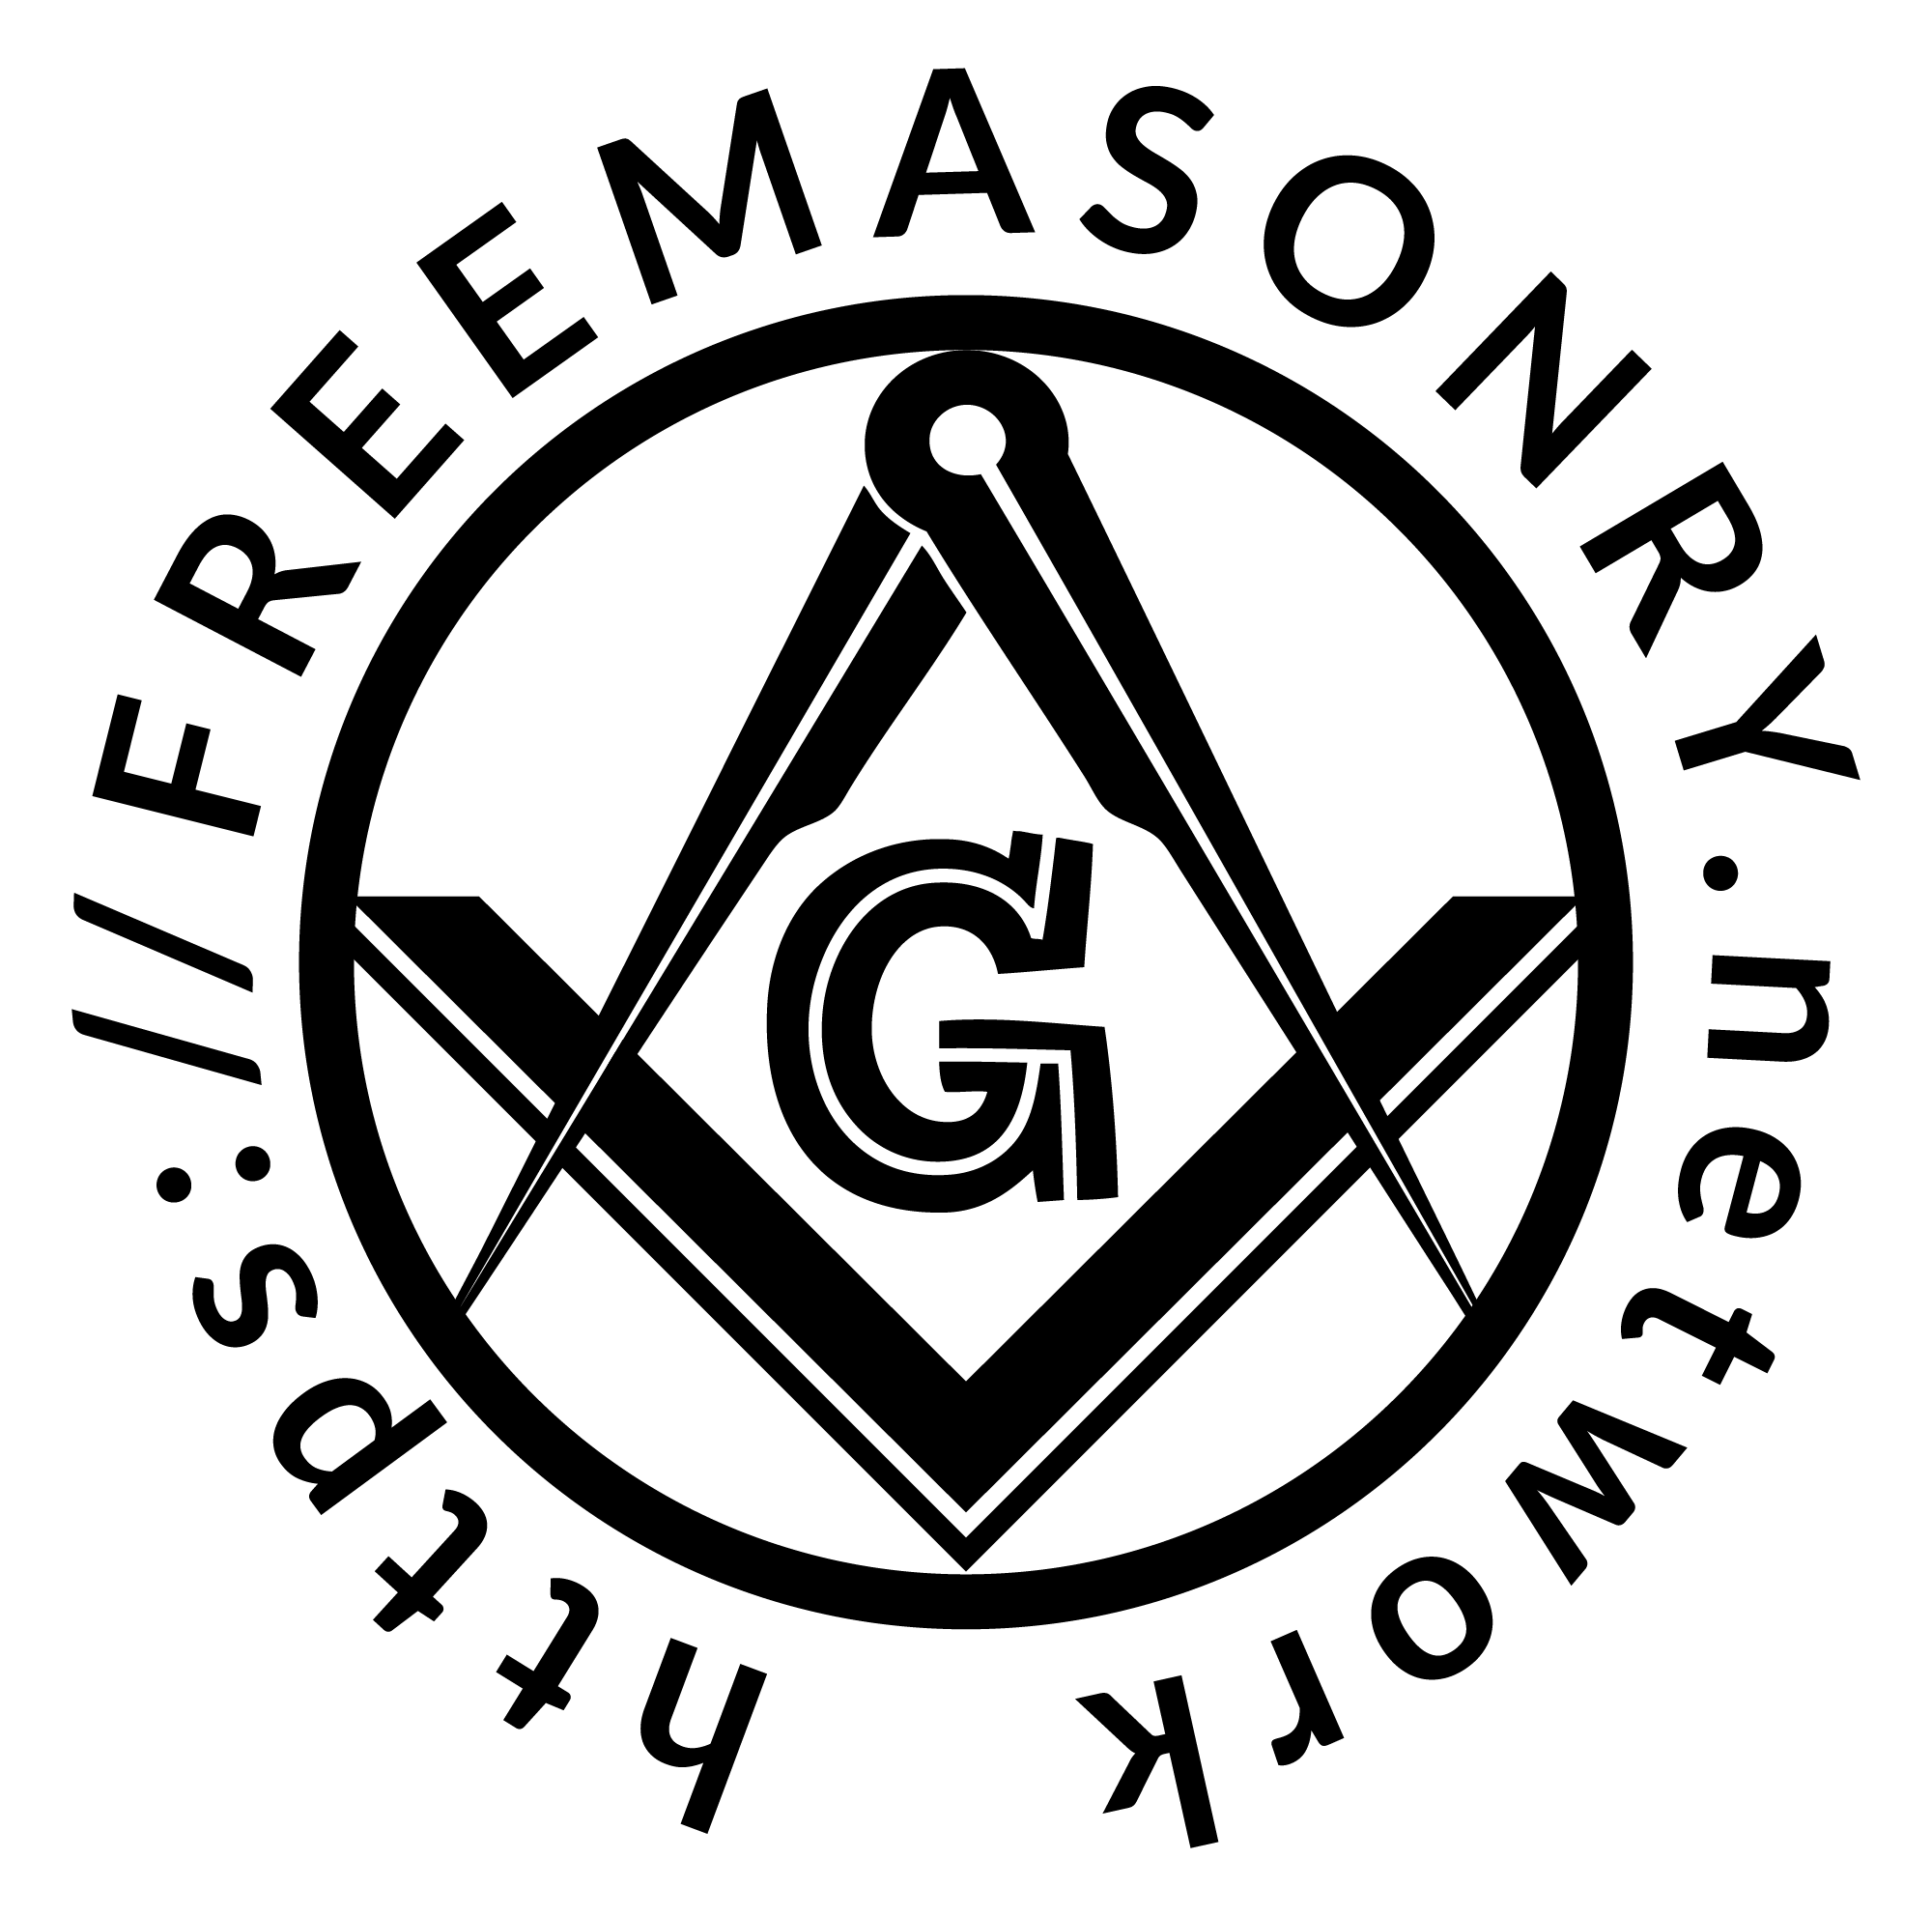 MASONIC RESEARCH